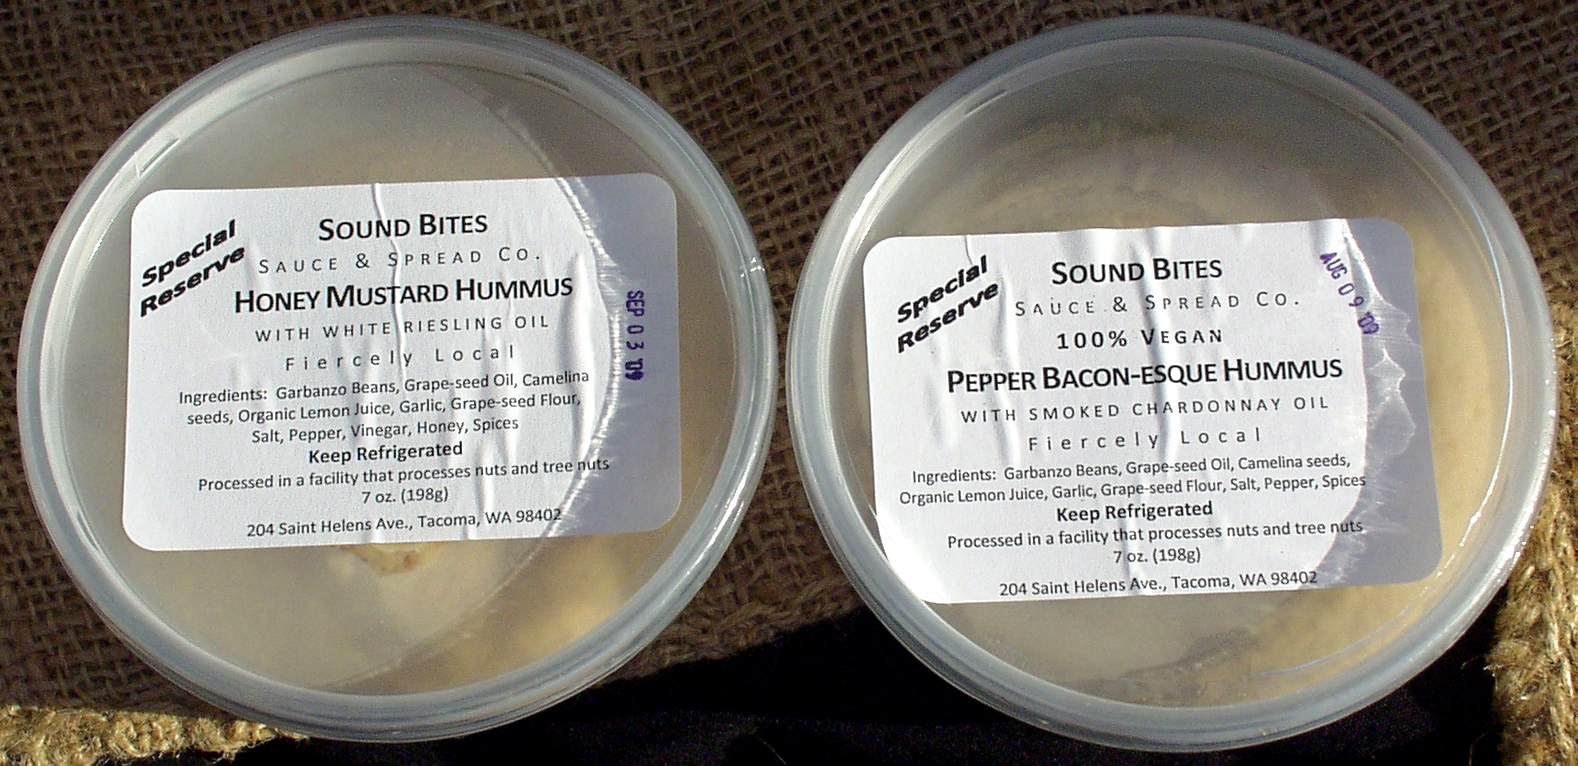 Two new flavors of hummus from Sound Bites. Photo copyright 2009 by Zachary D. Lyons.